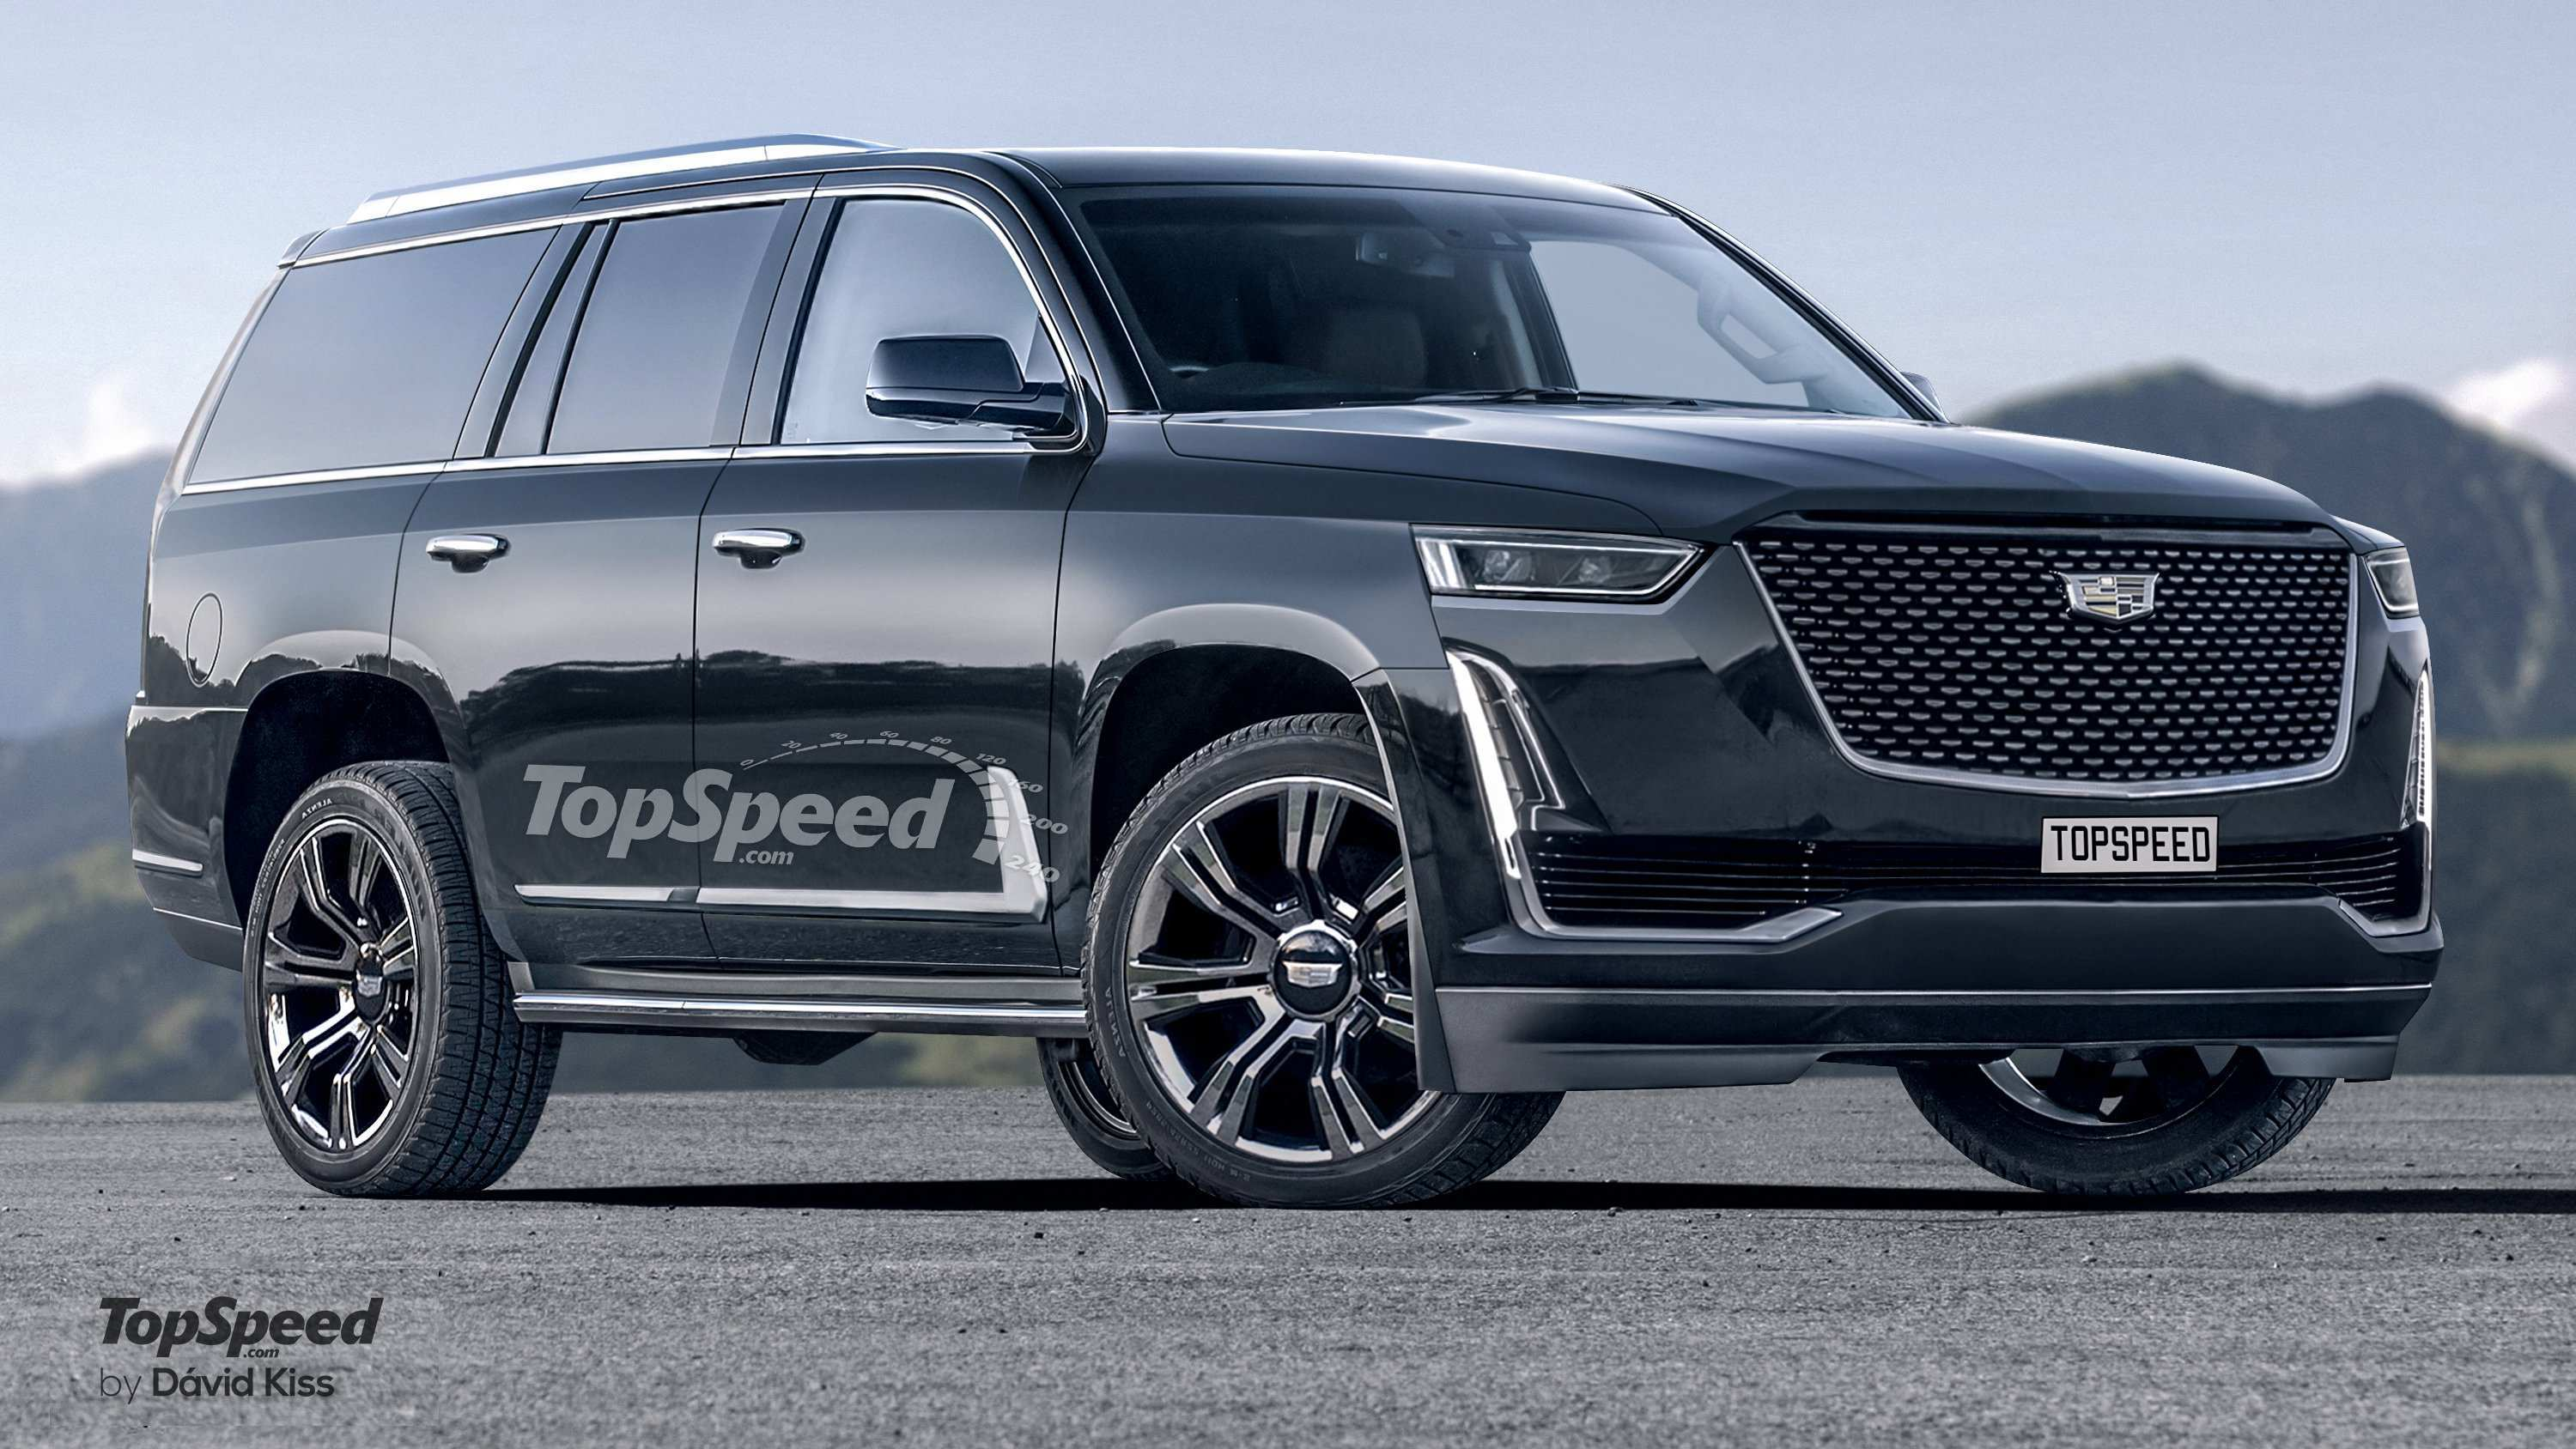 45 New When Will 2020 Gmc Yukon Come Out Research New with When Will 2020 Gmc Yukon Come Out